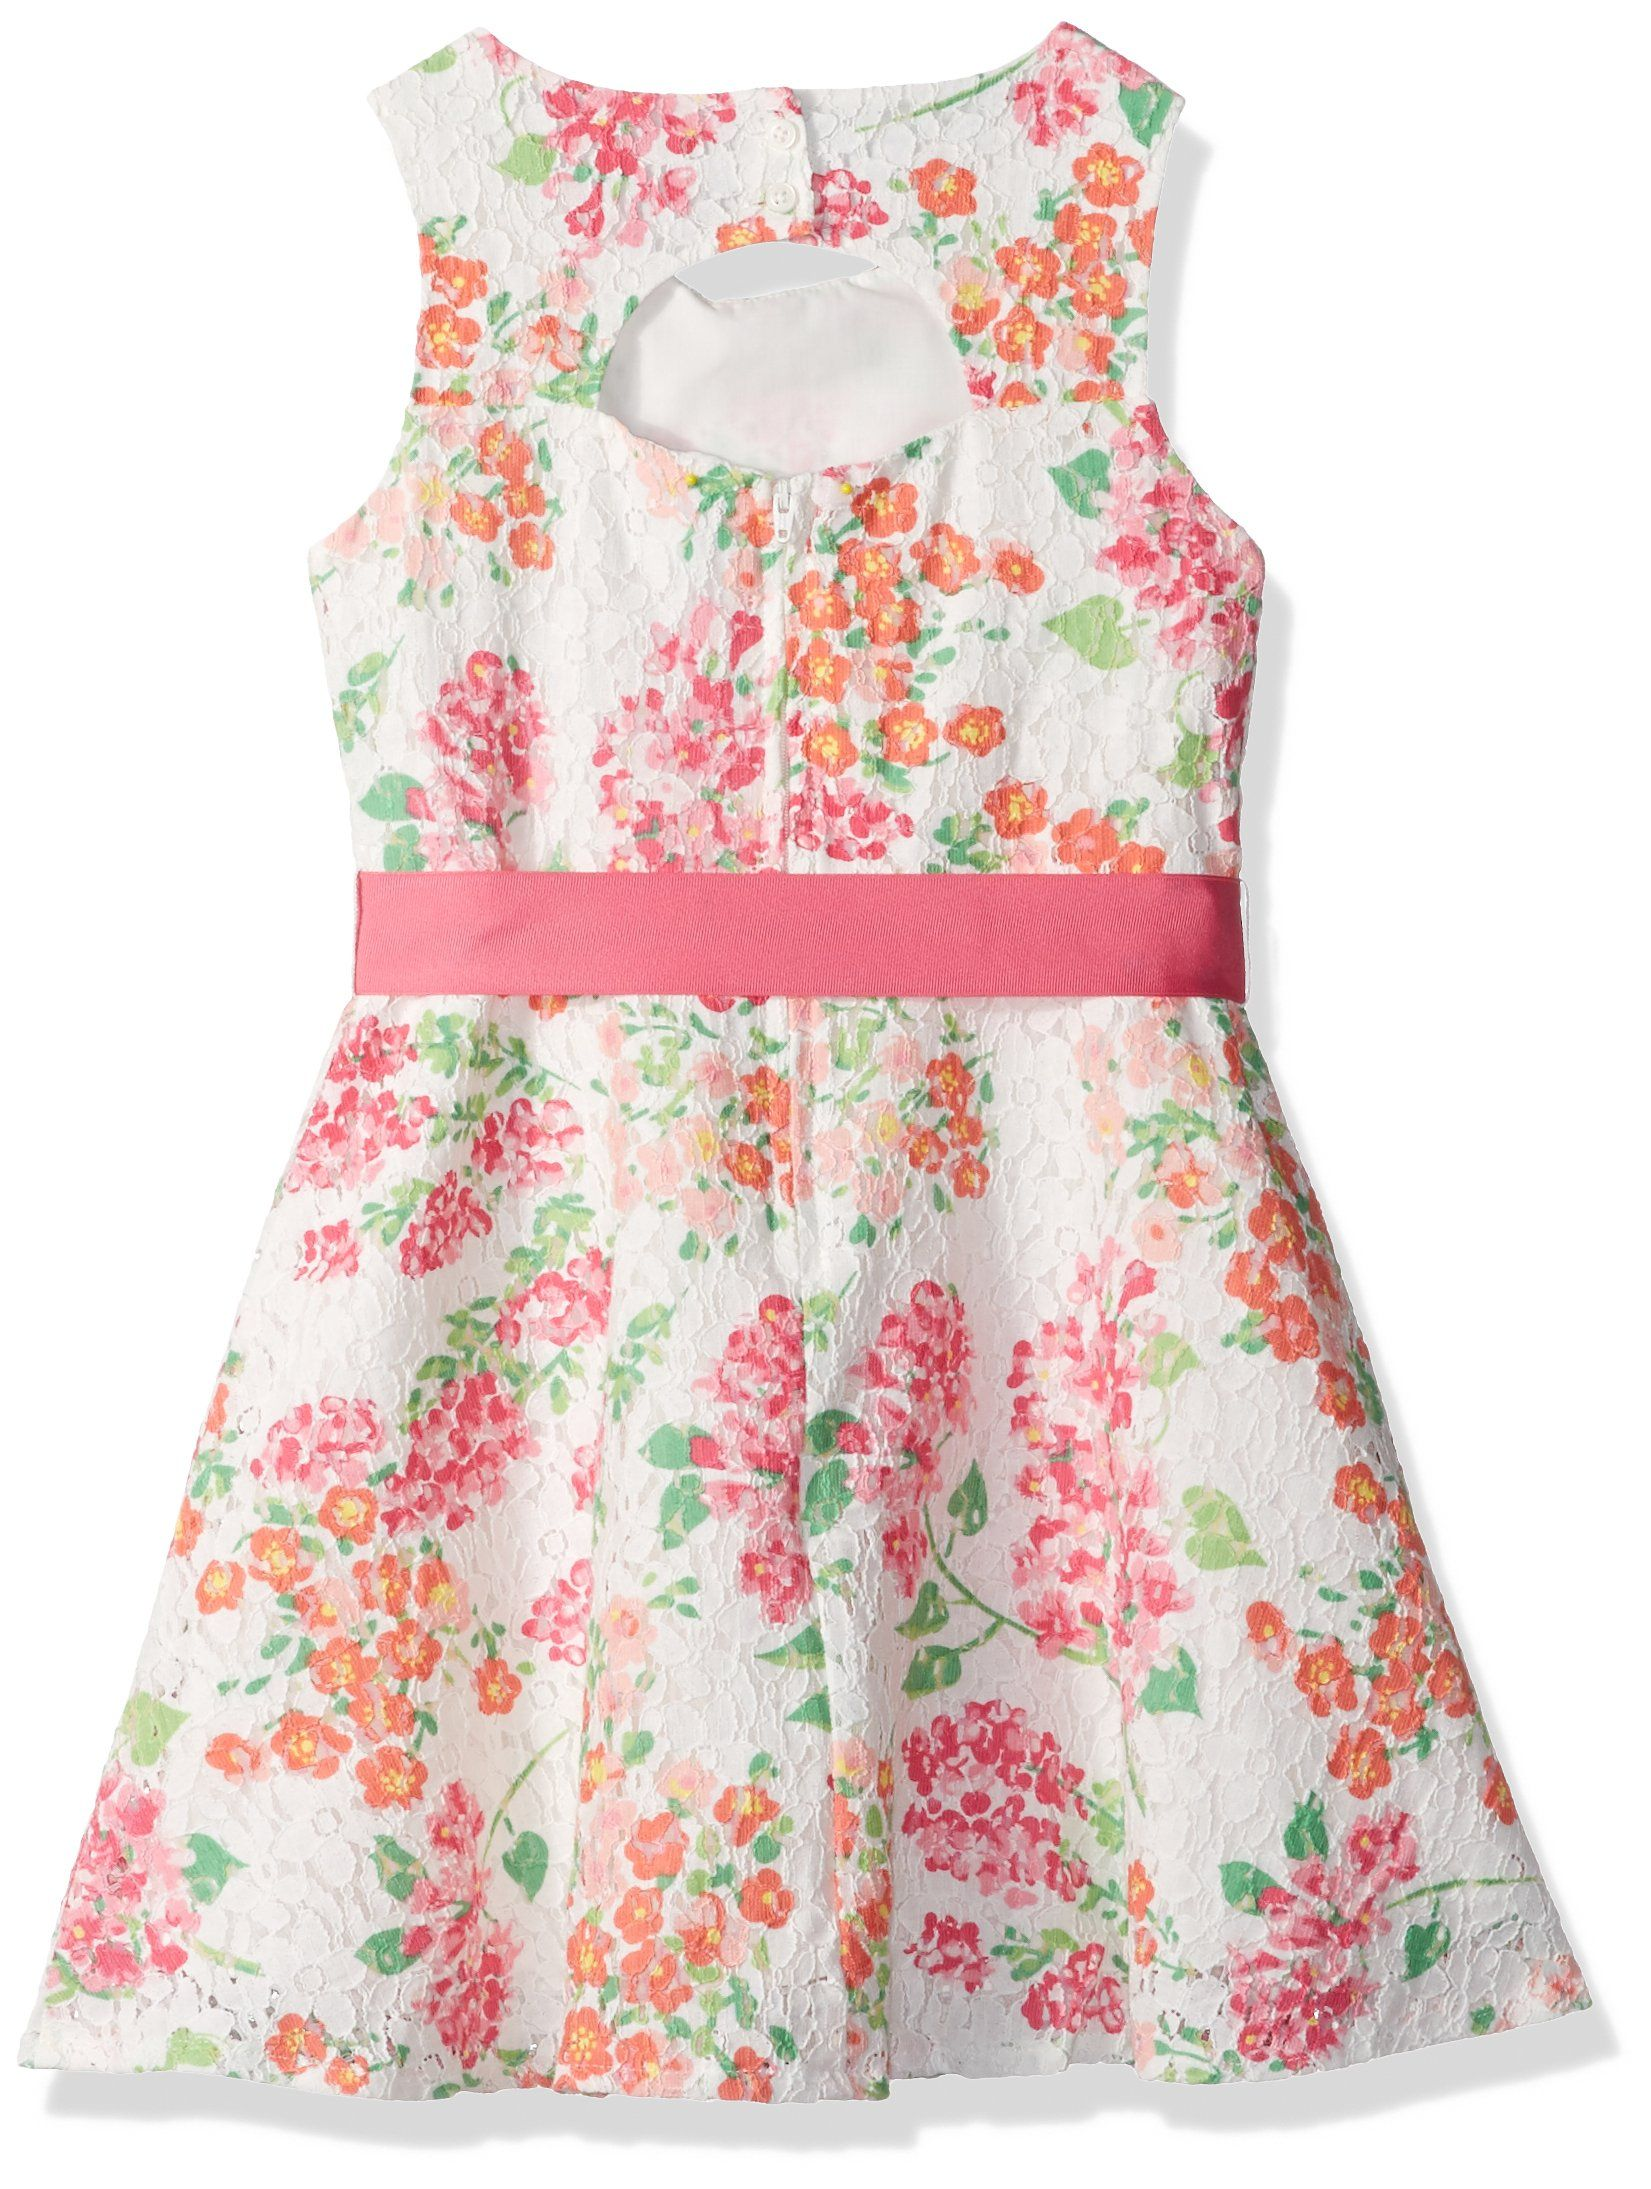 ca7a2927e639 The Childrens Place Little Girls Sleeveless Dressy Dresses 2 Neon Berry  8173 4 -- You can find more details by visiting the image link.